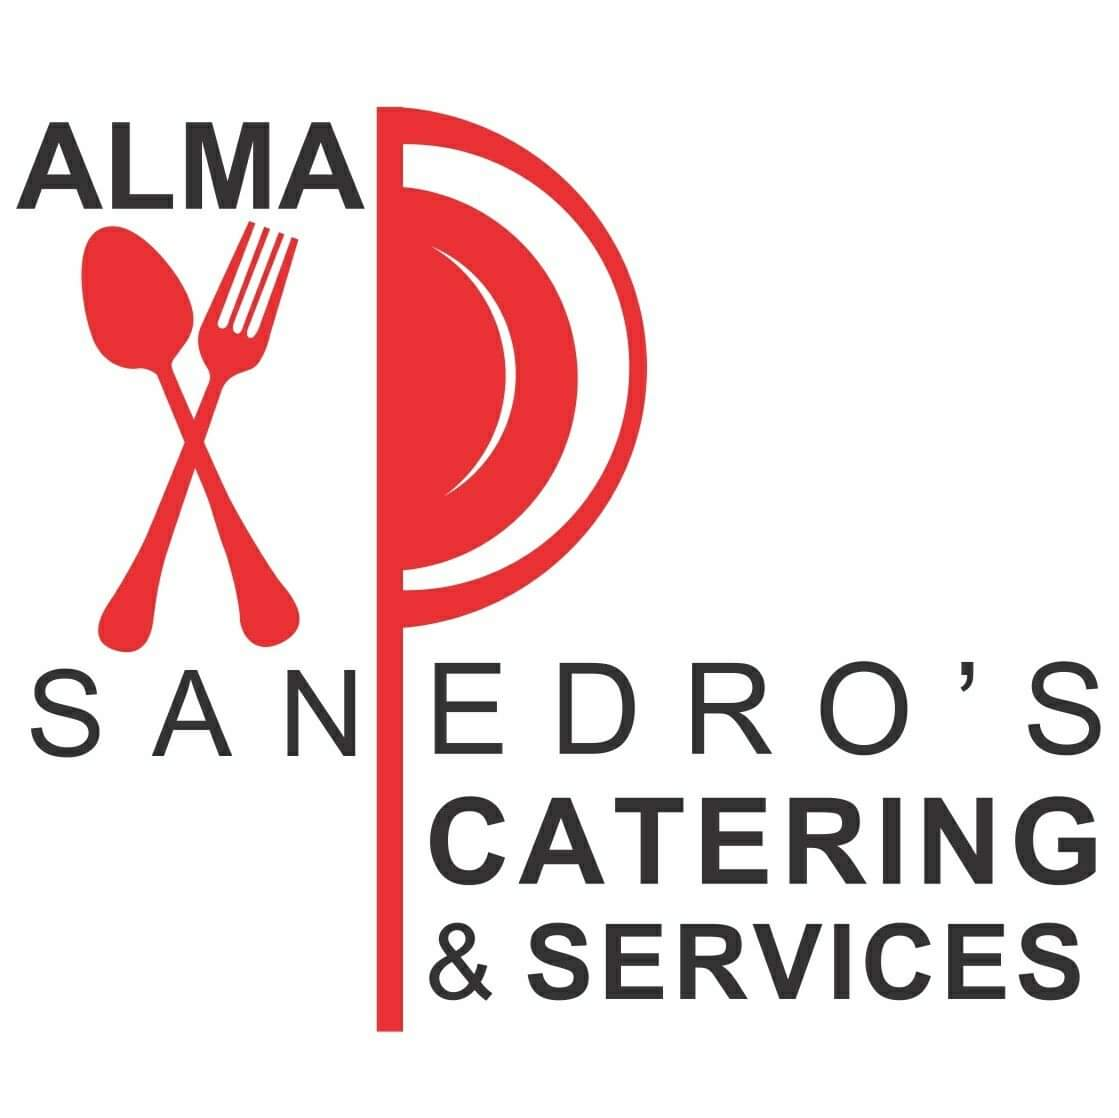 ALMASANPEDRO'S CATERING AND SERVICES